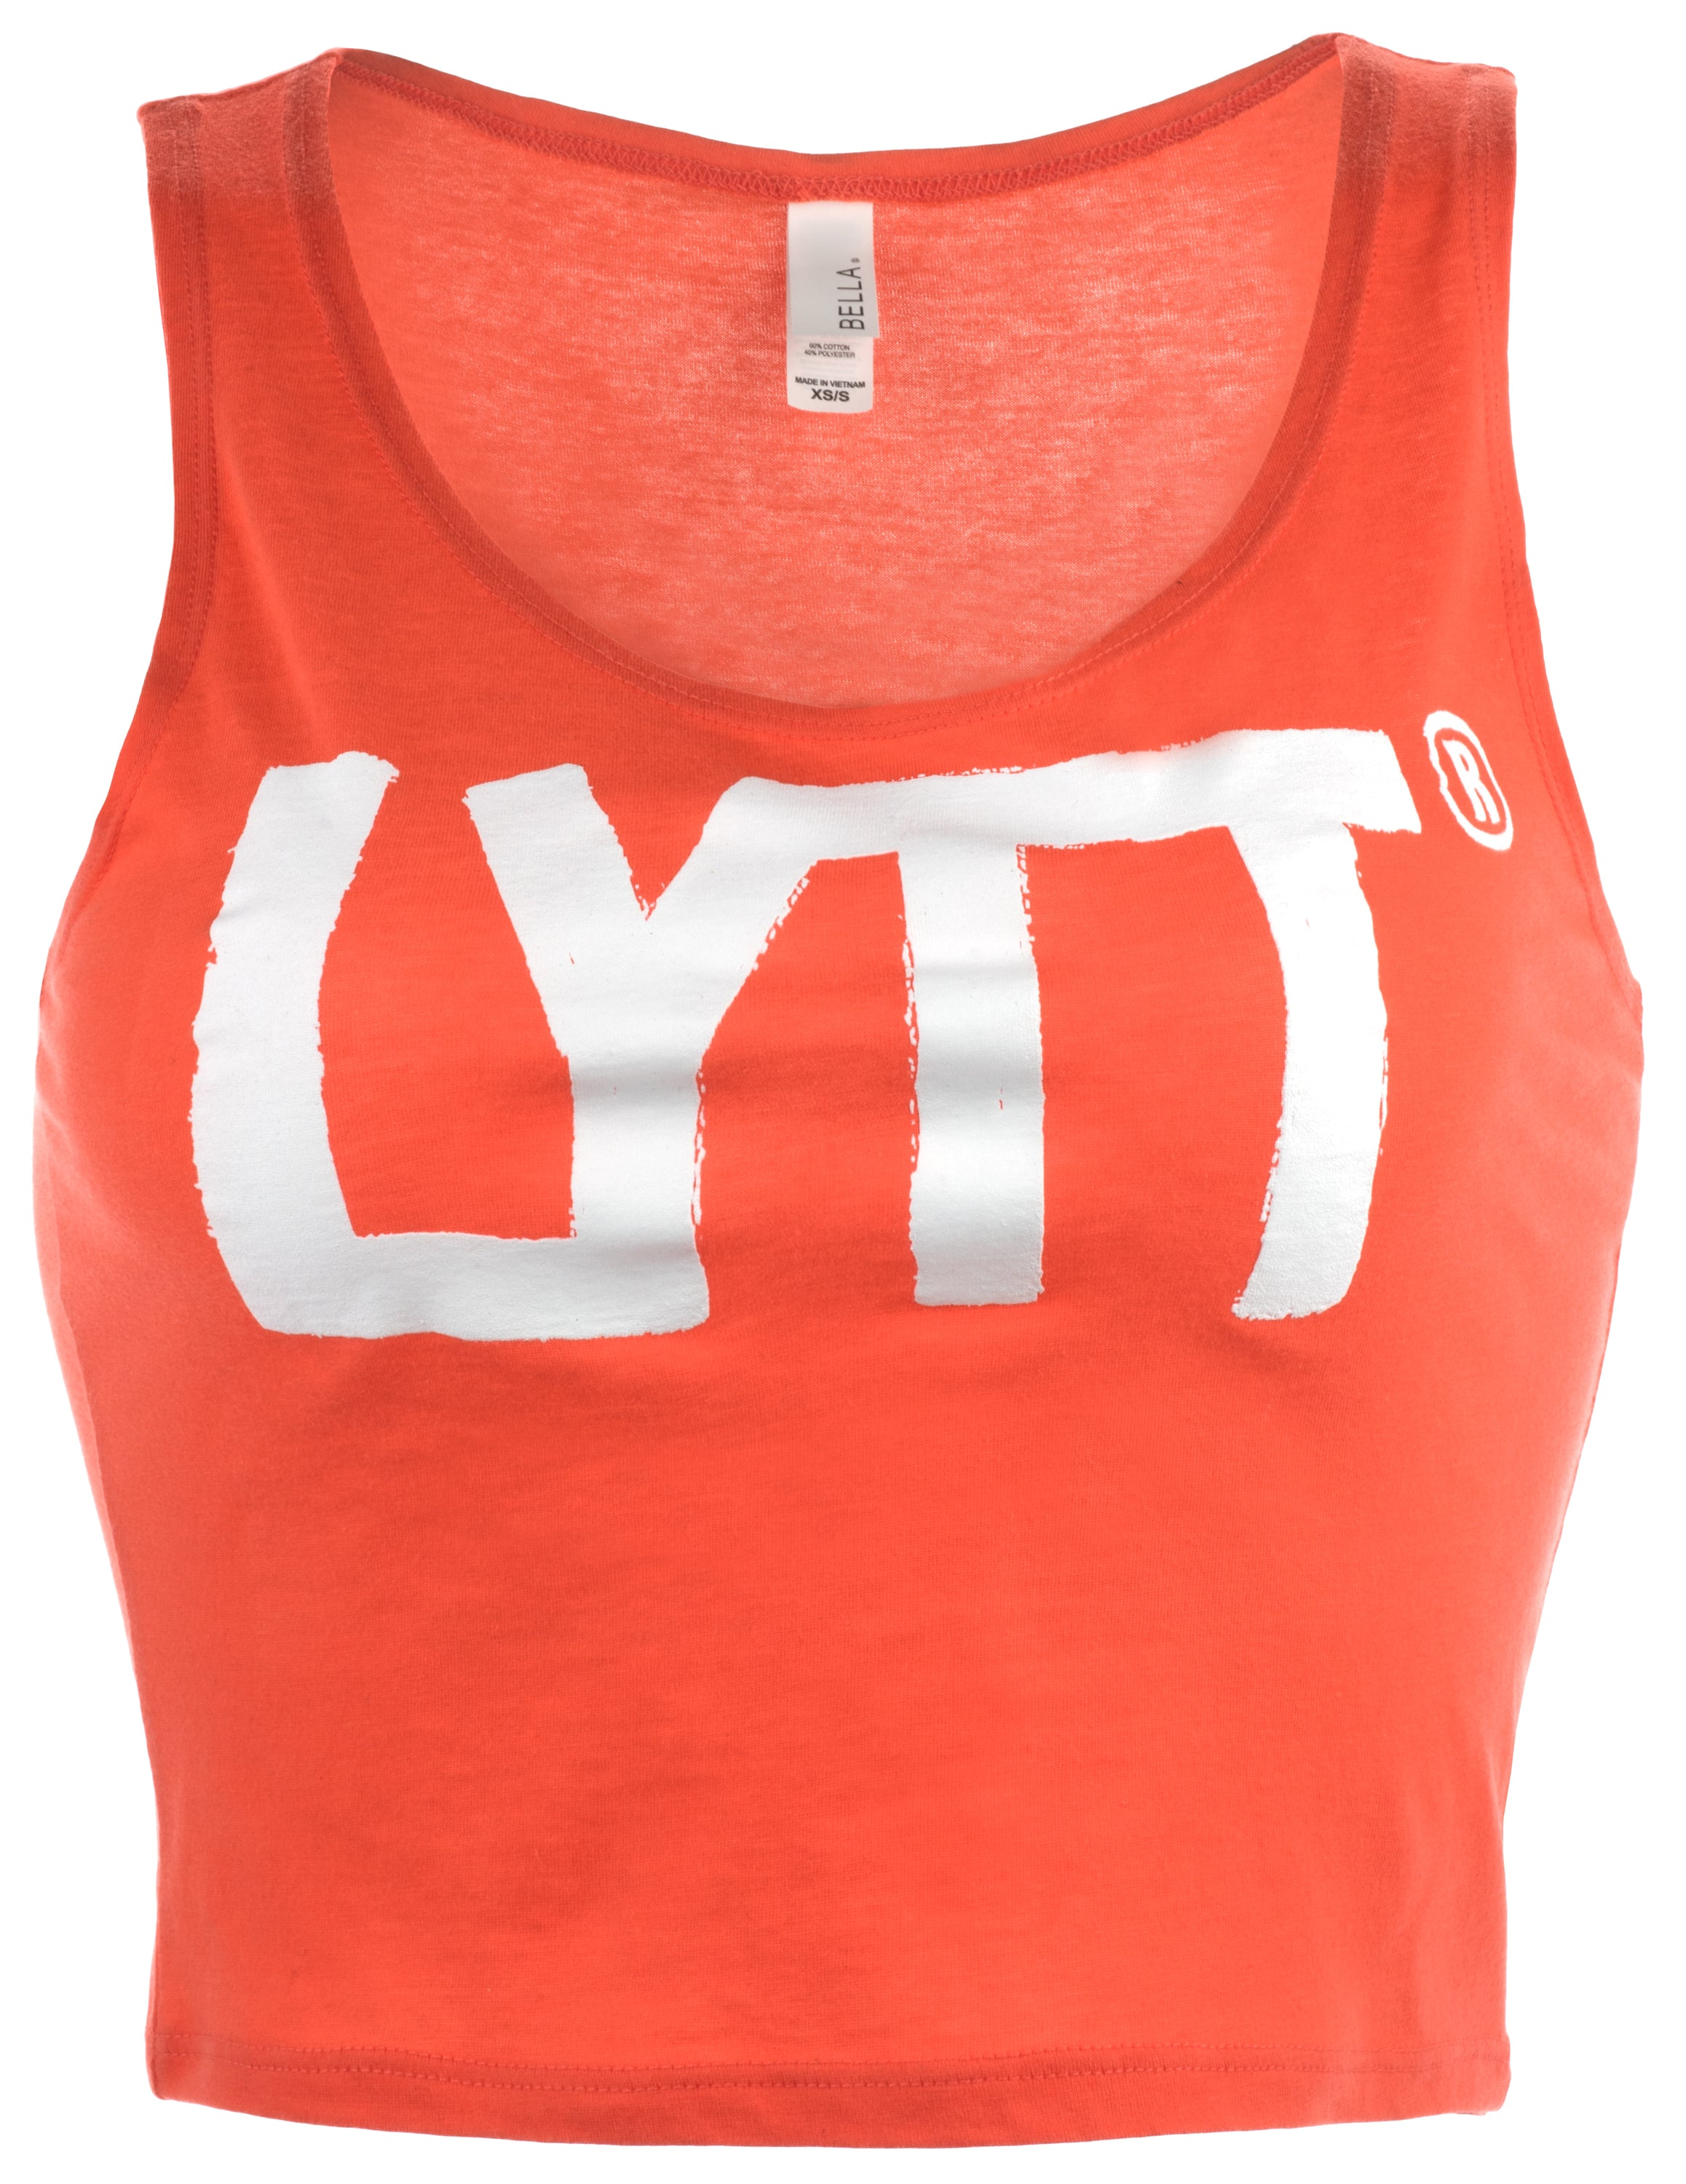 LYTT Ladies' Crop Top